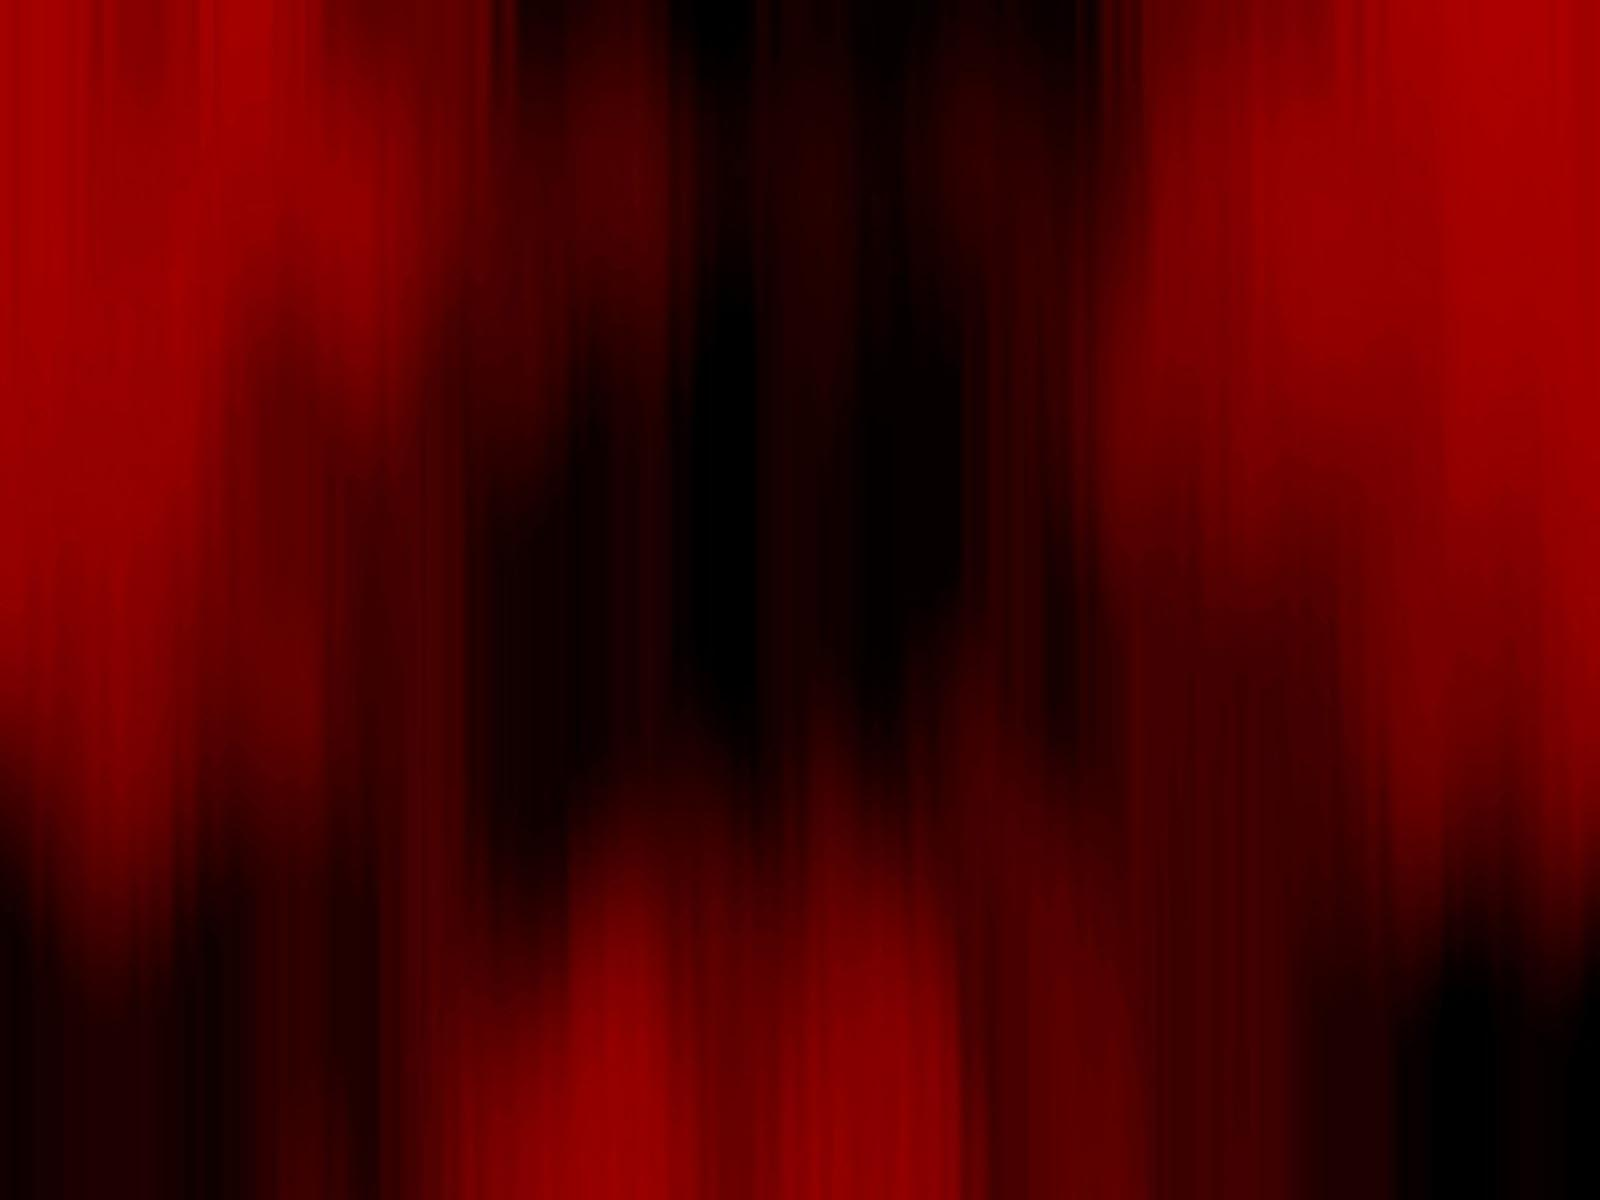 Streaky black and red wallpaper and backgrounds 1600 x for Black and red wallpaper designs